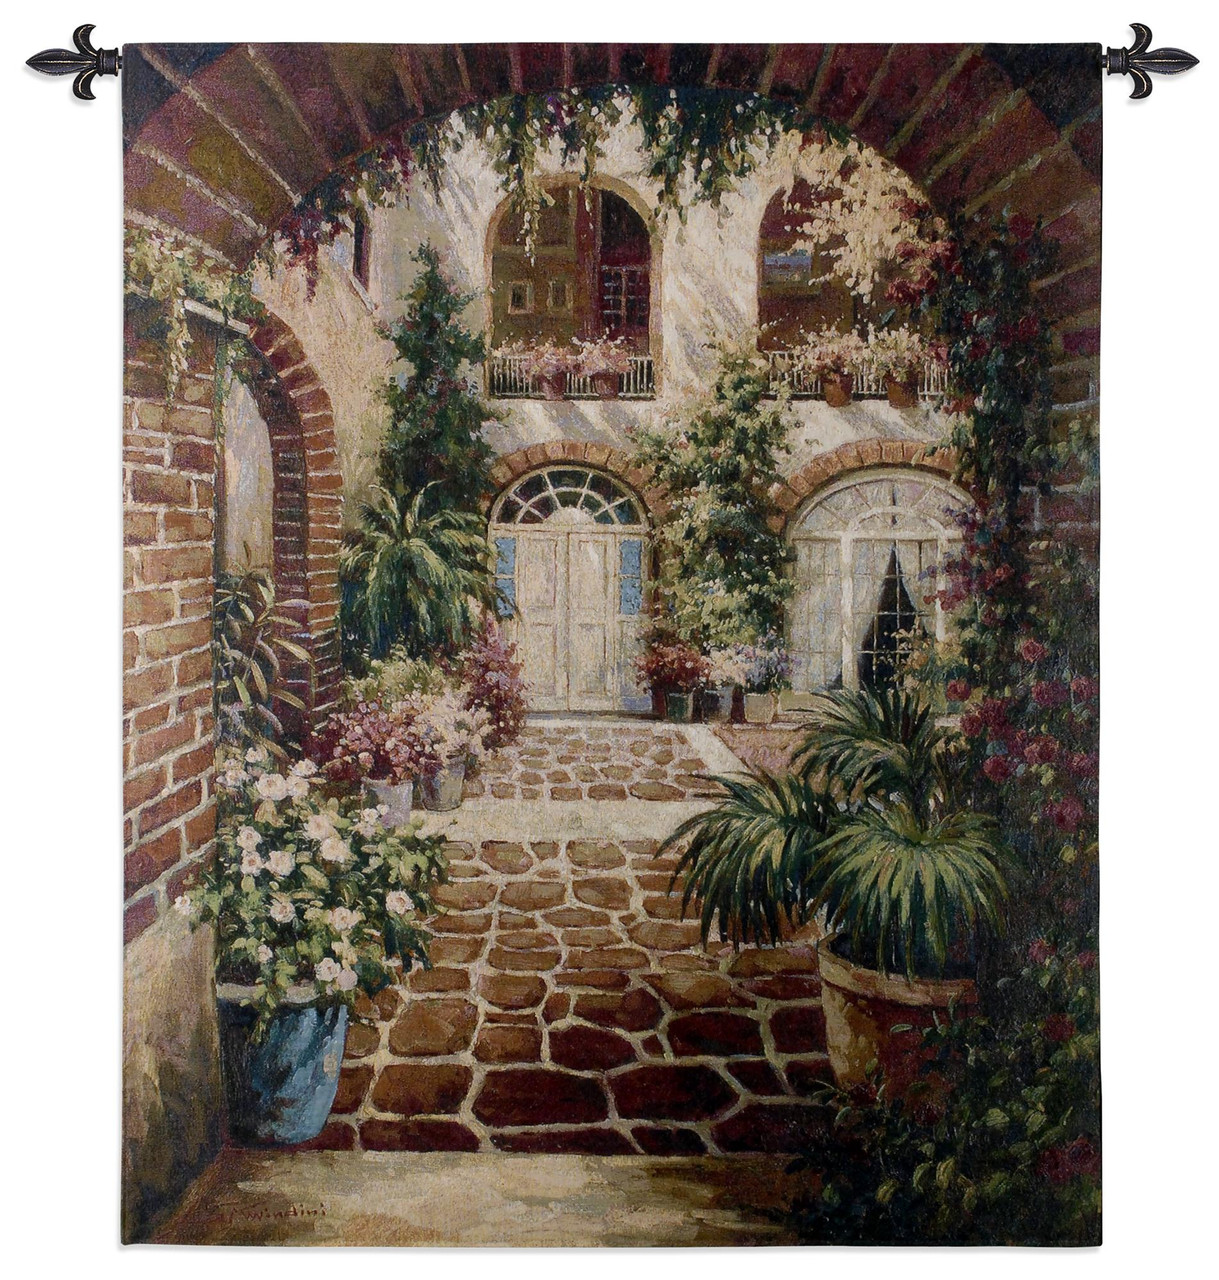 Courtyard Vista Woven Tapestry Wall Art Hanging Comforting Lush Greenery In Villa 100 Cotton Usa Size 53x42